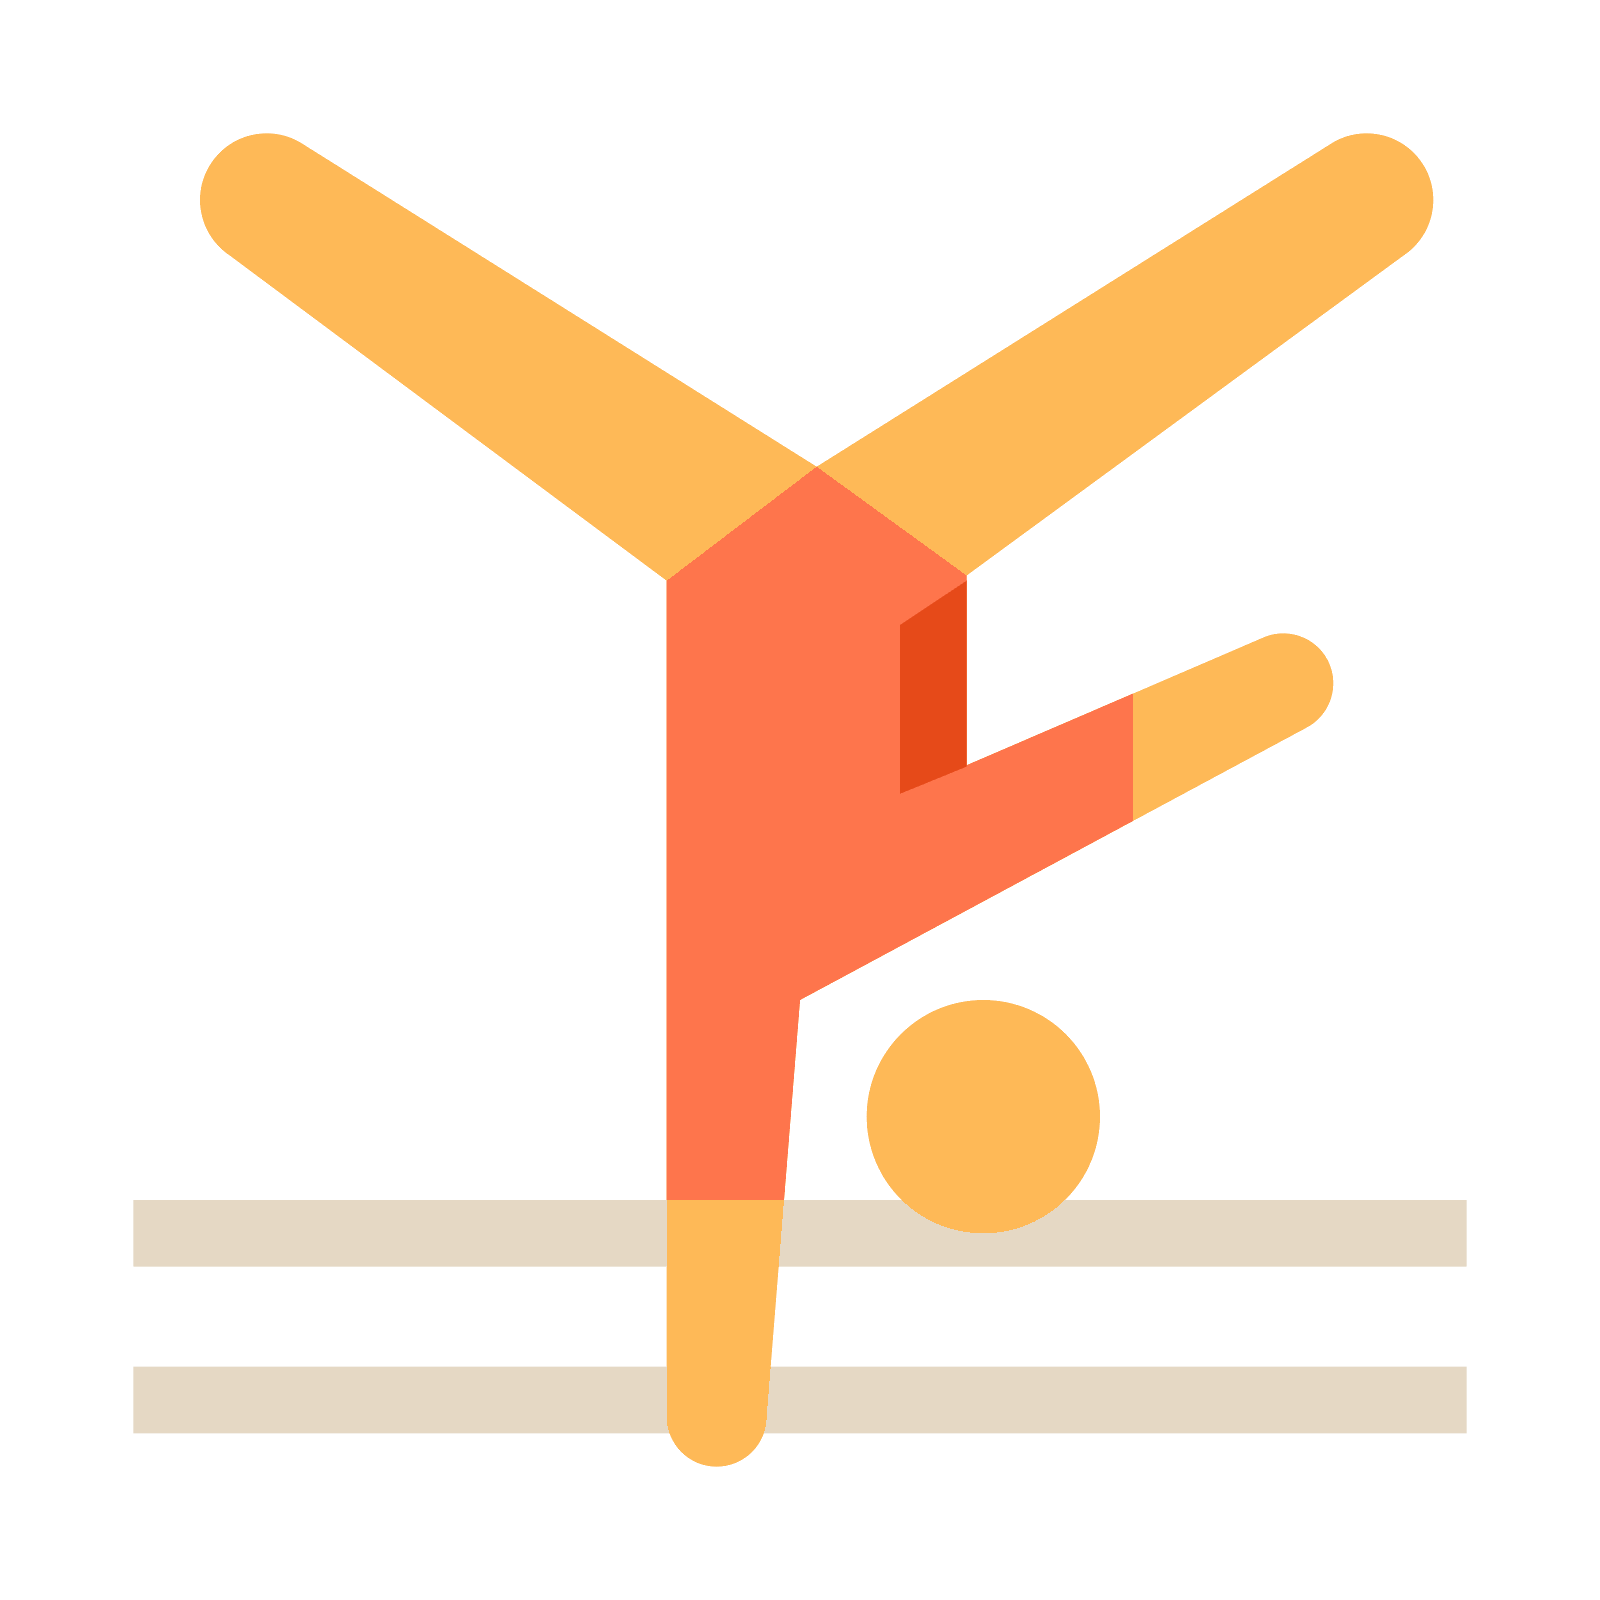 aerobic png icon. Gym clipart flat graphic